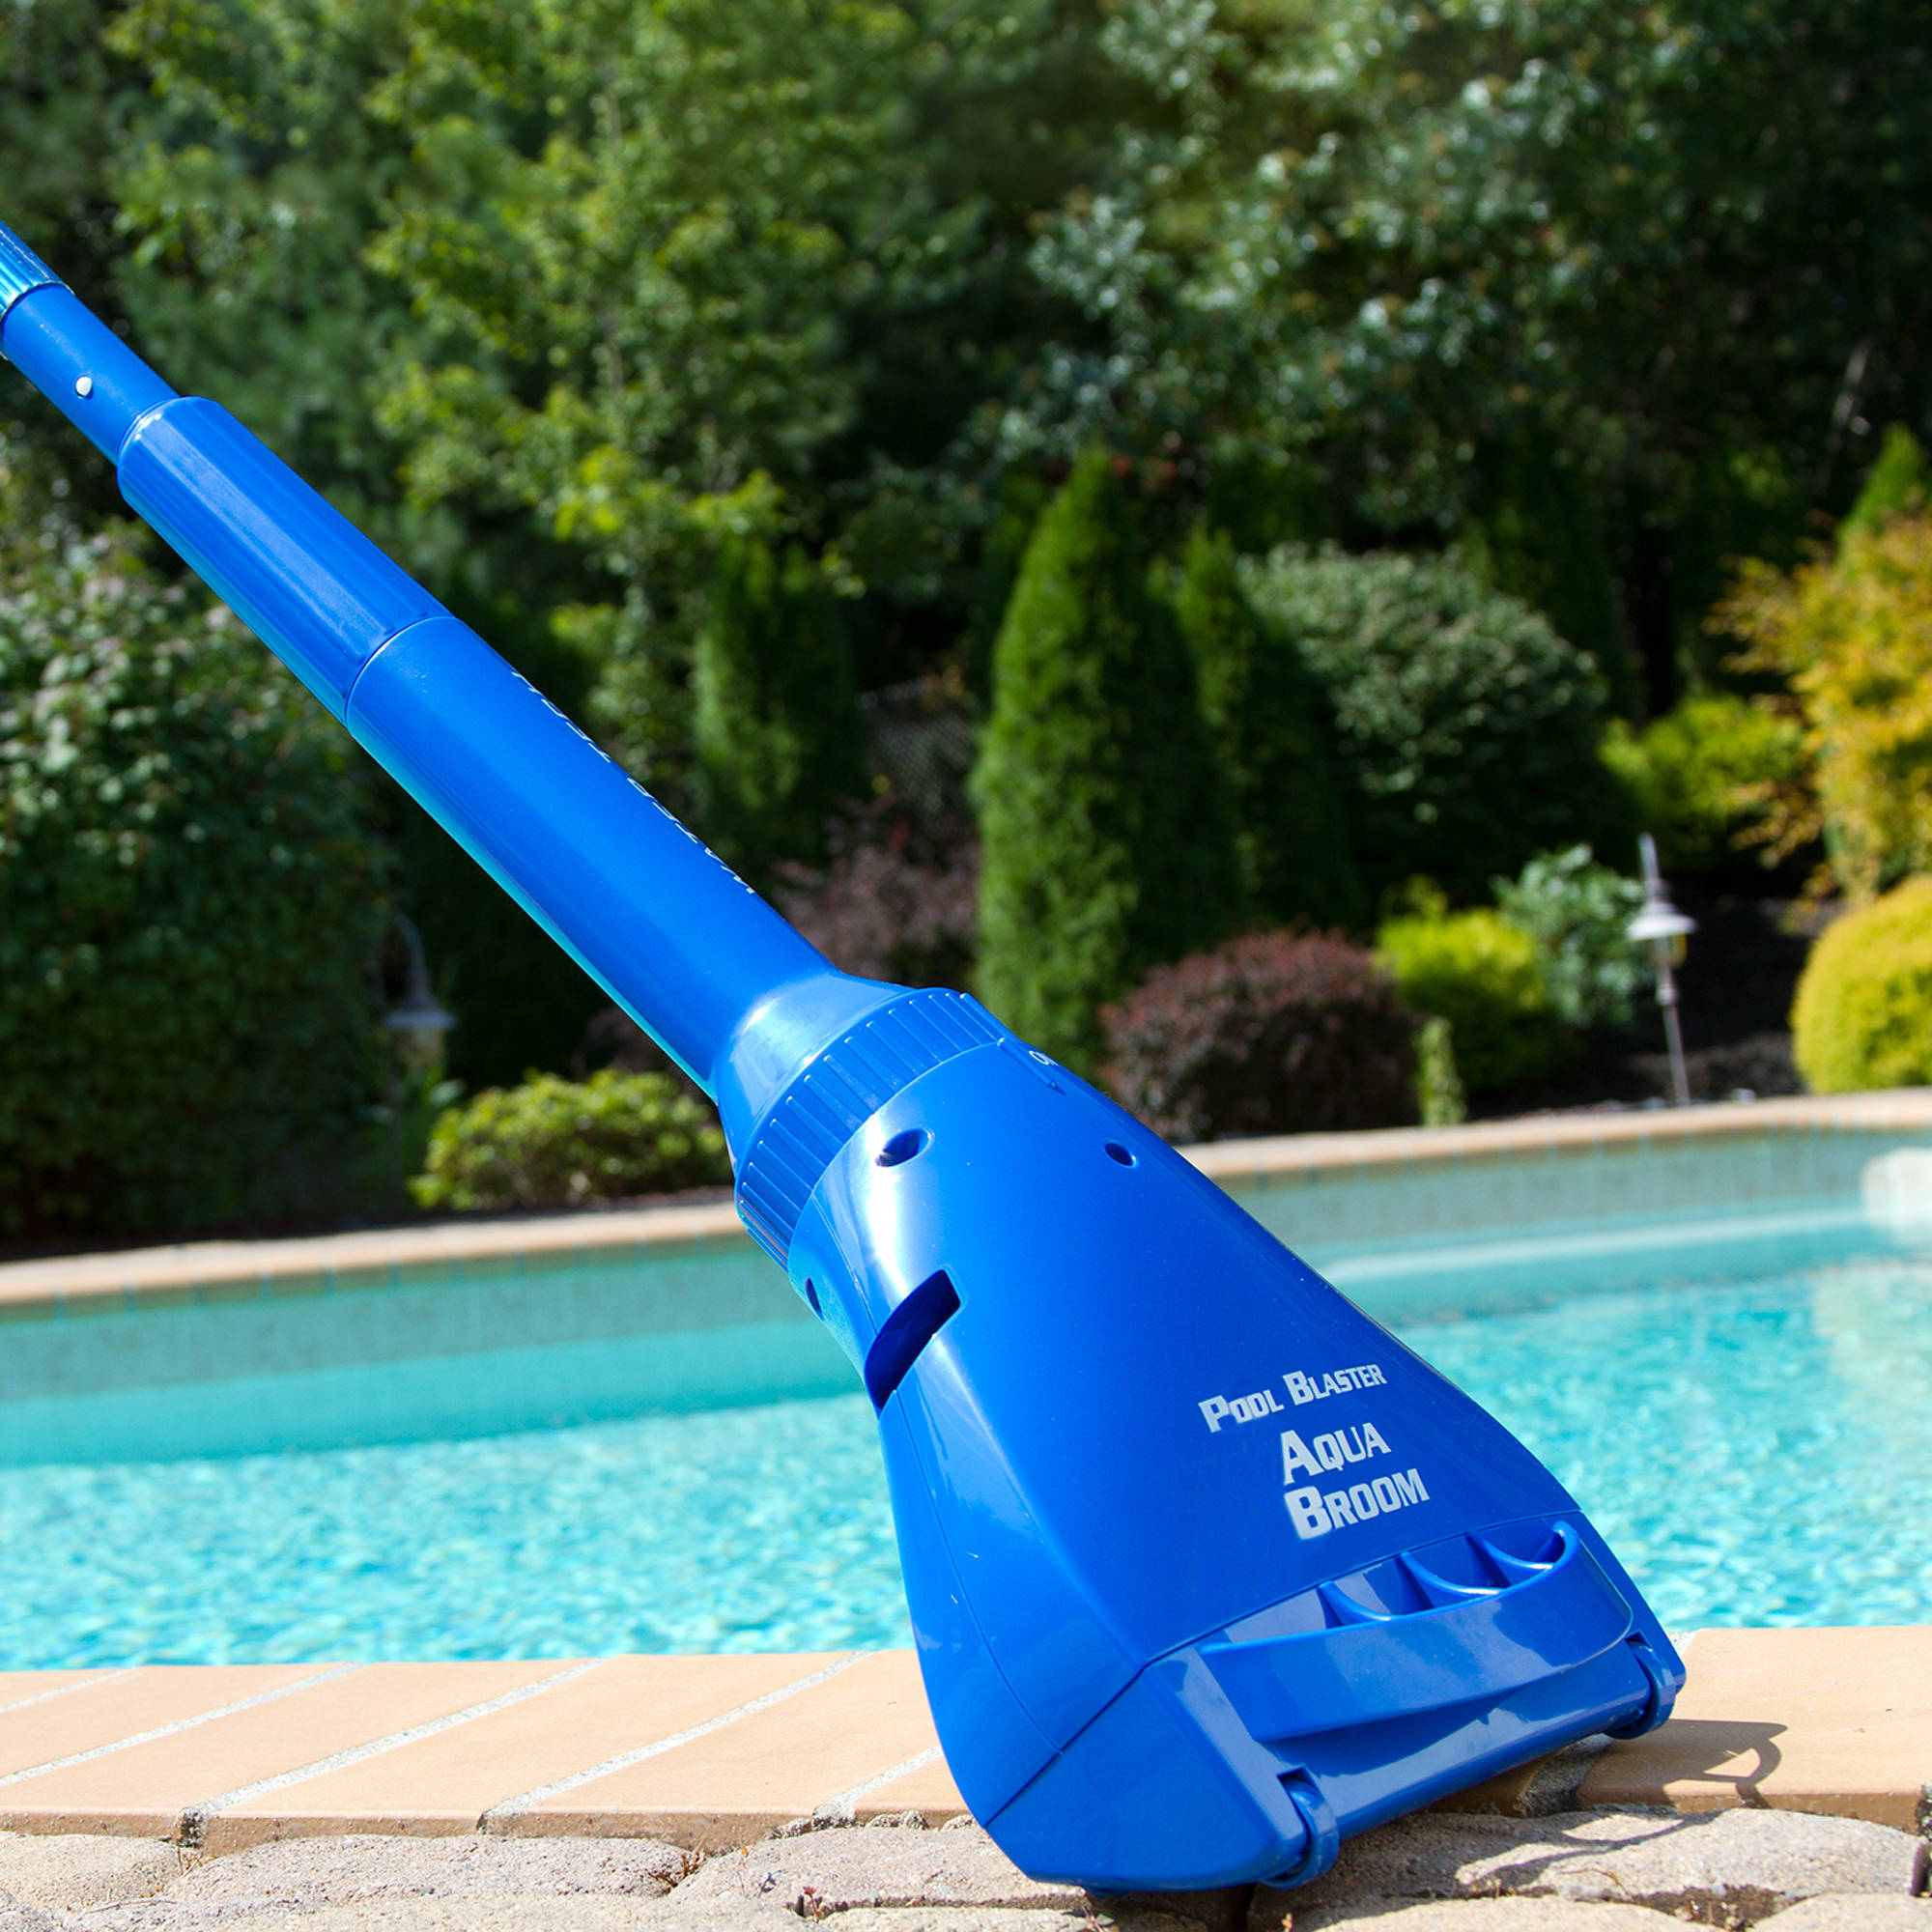 Water Tech Aqua Broom Battery Operated Swimming Pool and Spa Hot Tub Cleaner